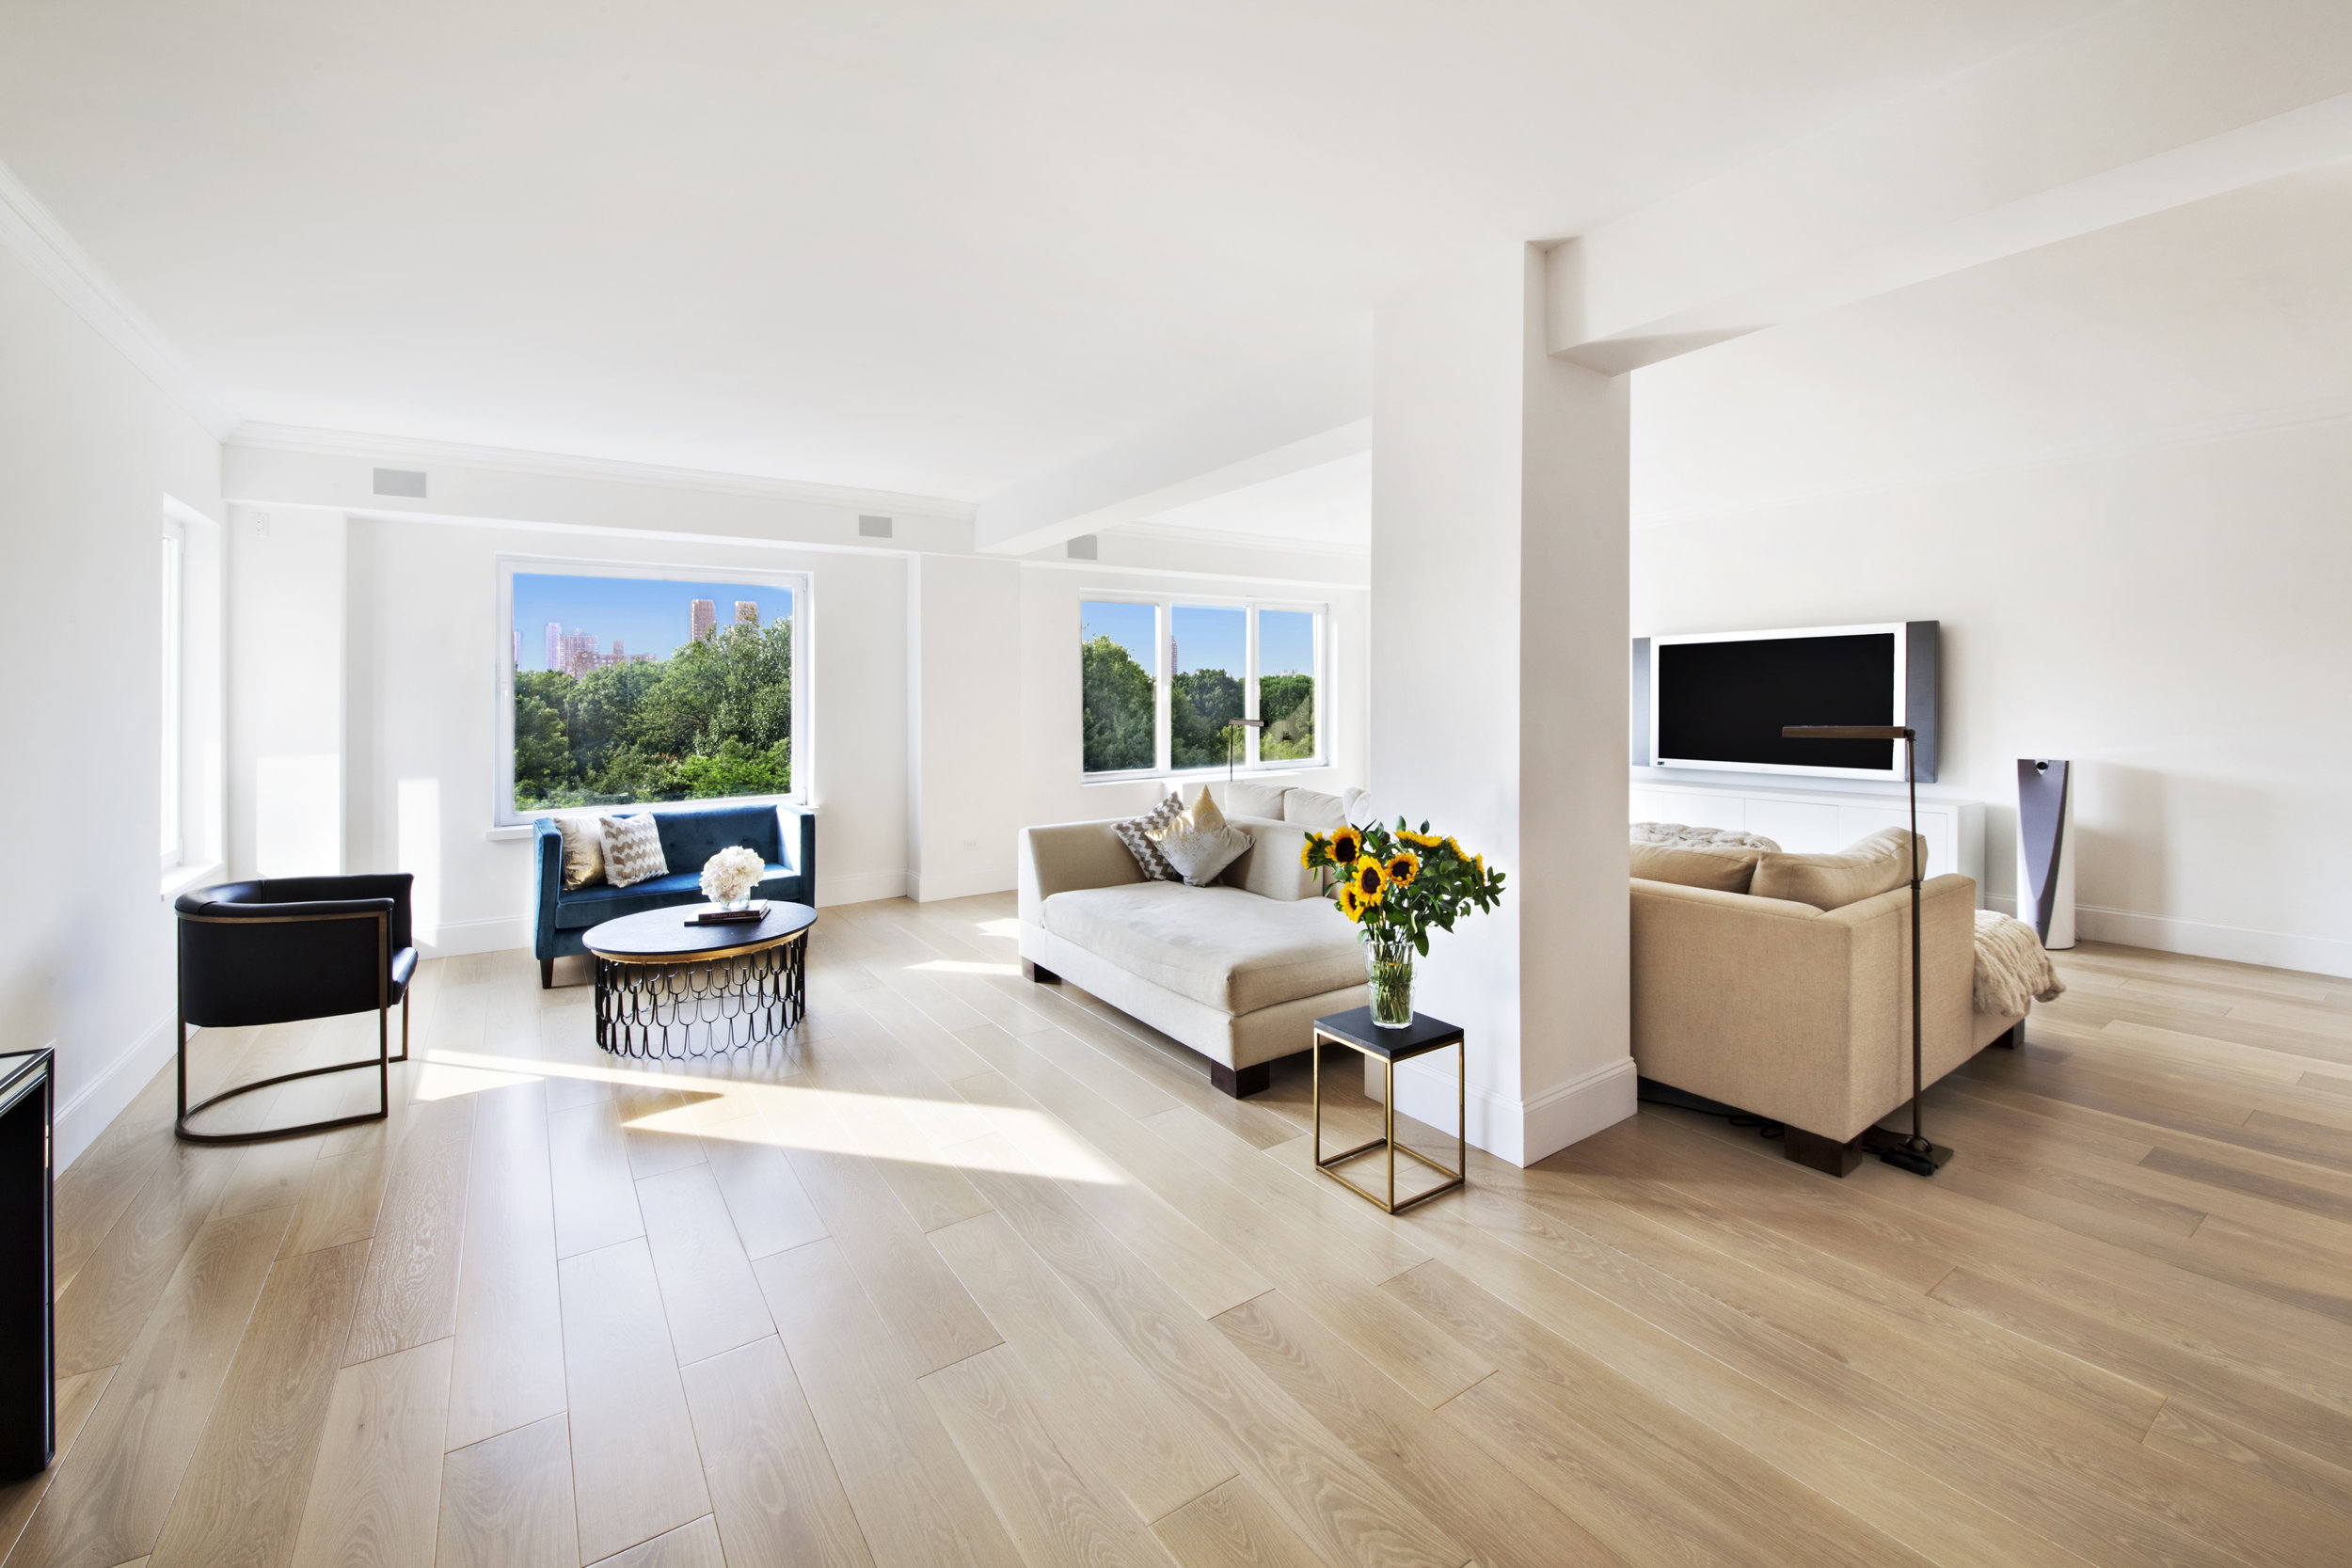 880 Fifth Avenue, Apt 9BC | Represented Seller | $8,750,000